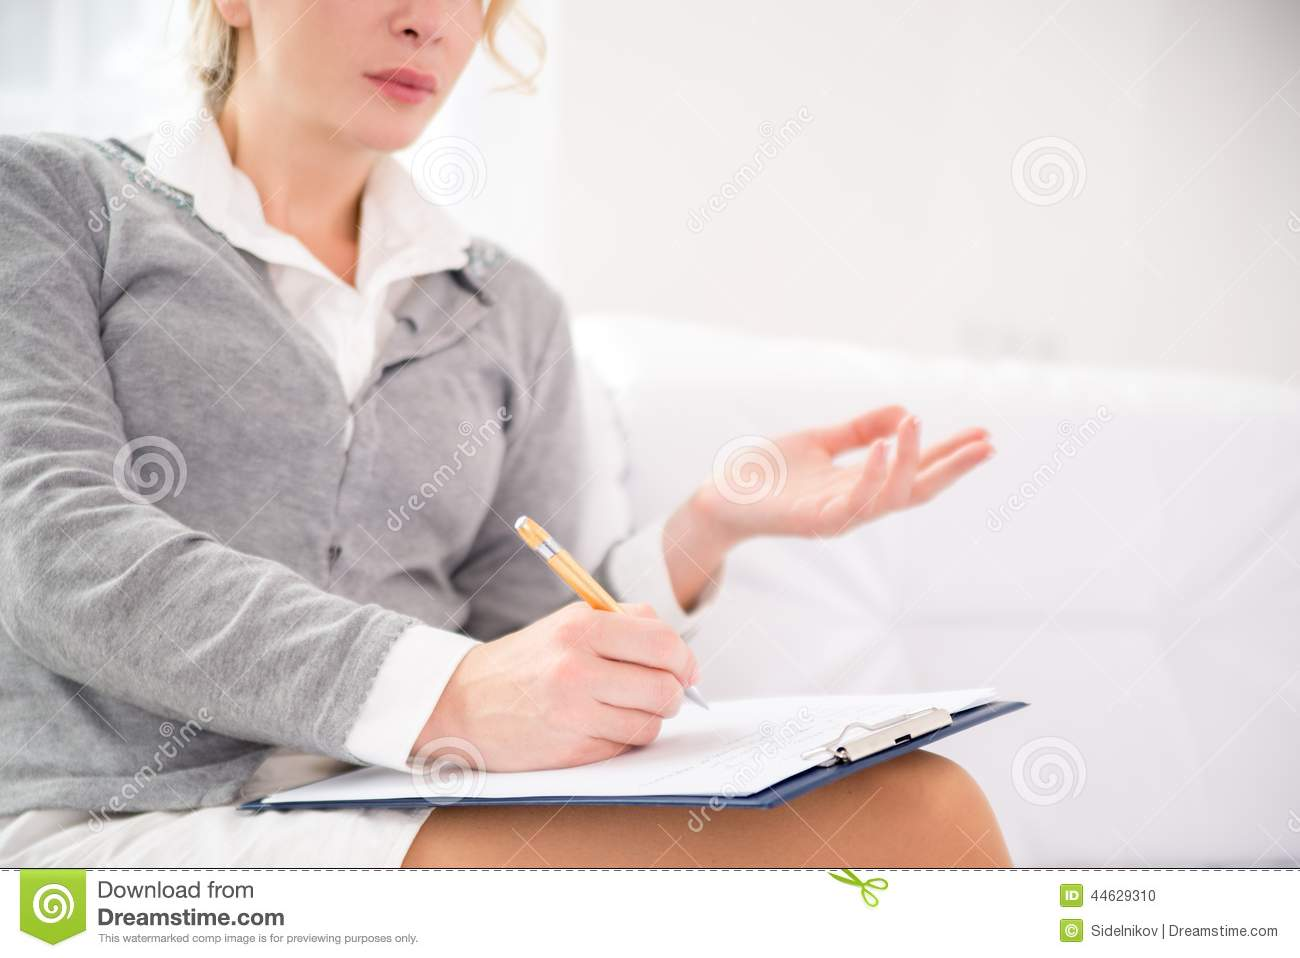 Professional psychiatrist during therapy session